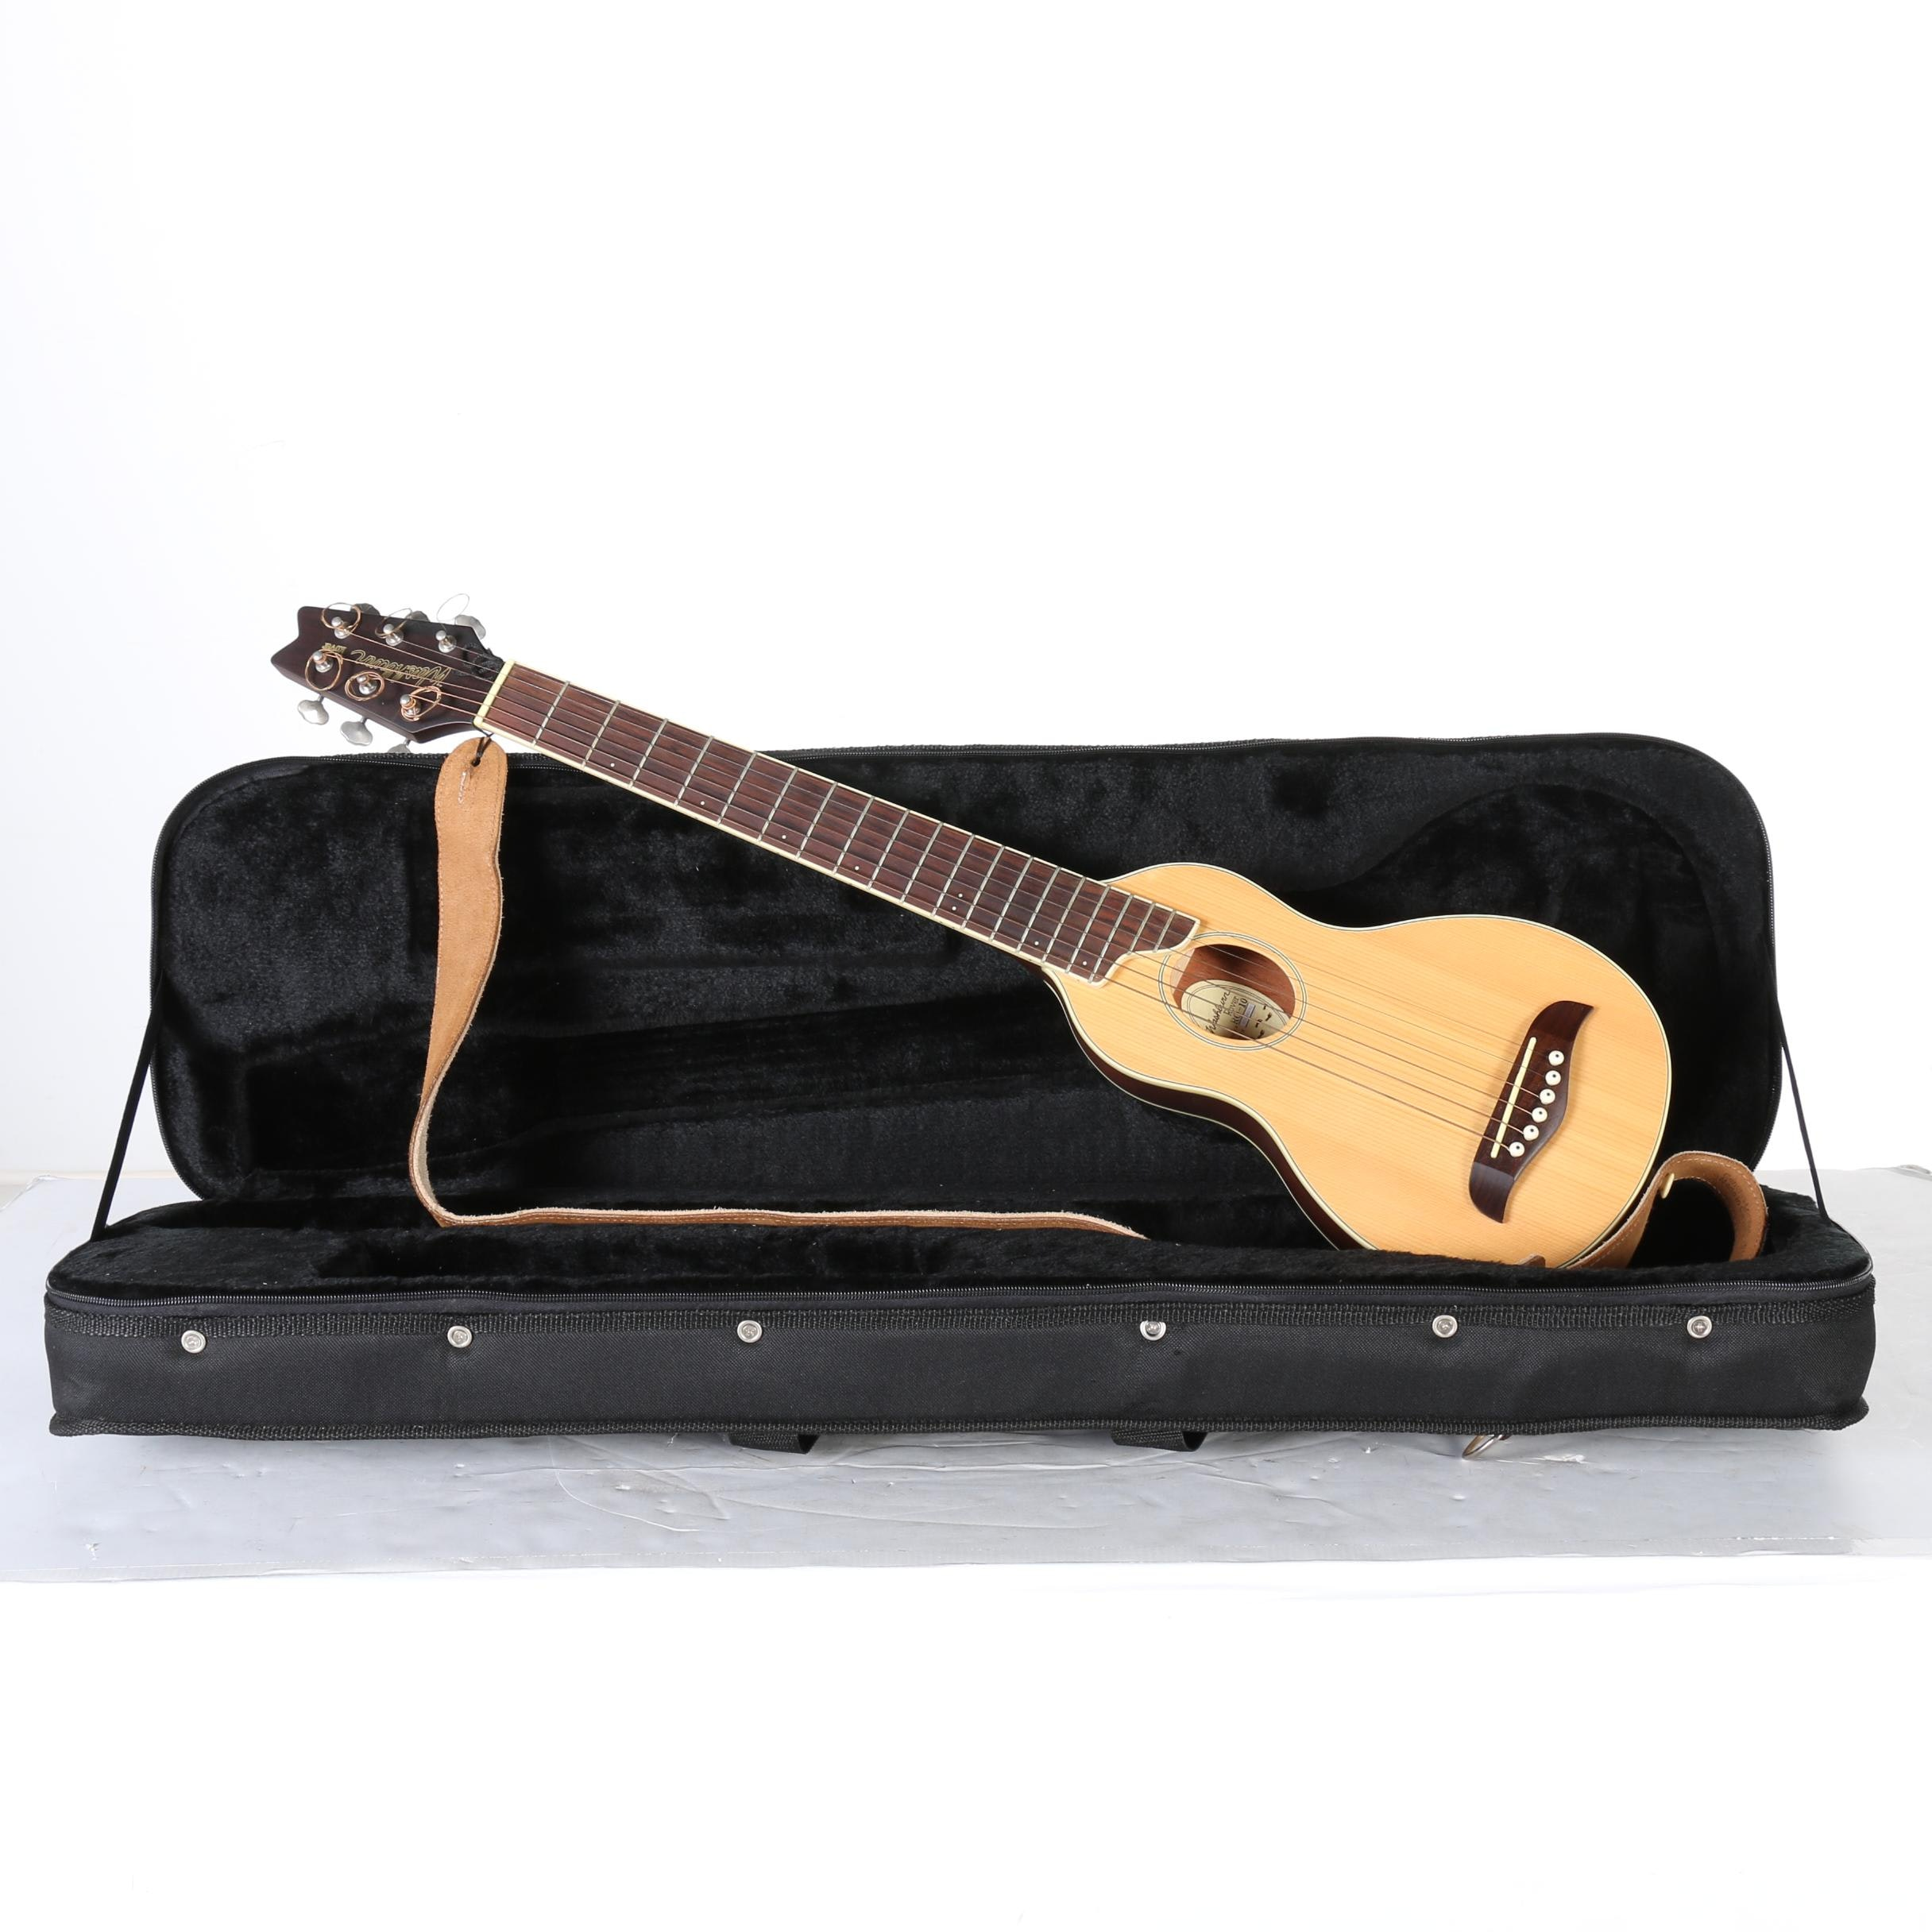 Washburn Rover Acoustic Travel Guitar, Case and Strap